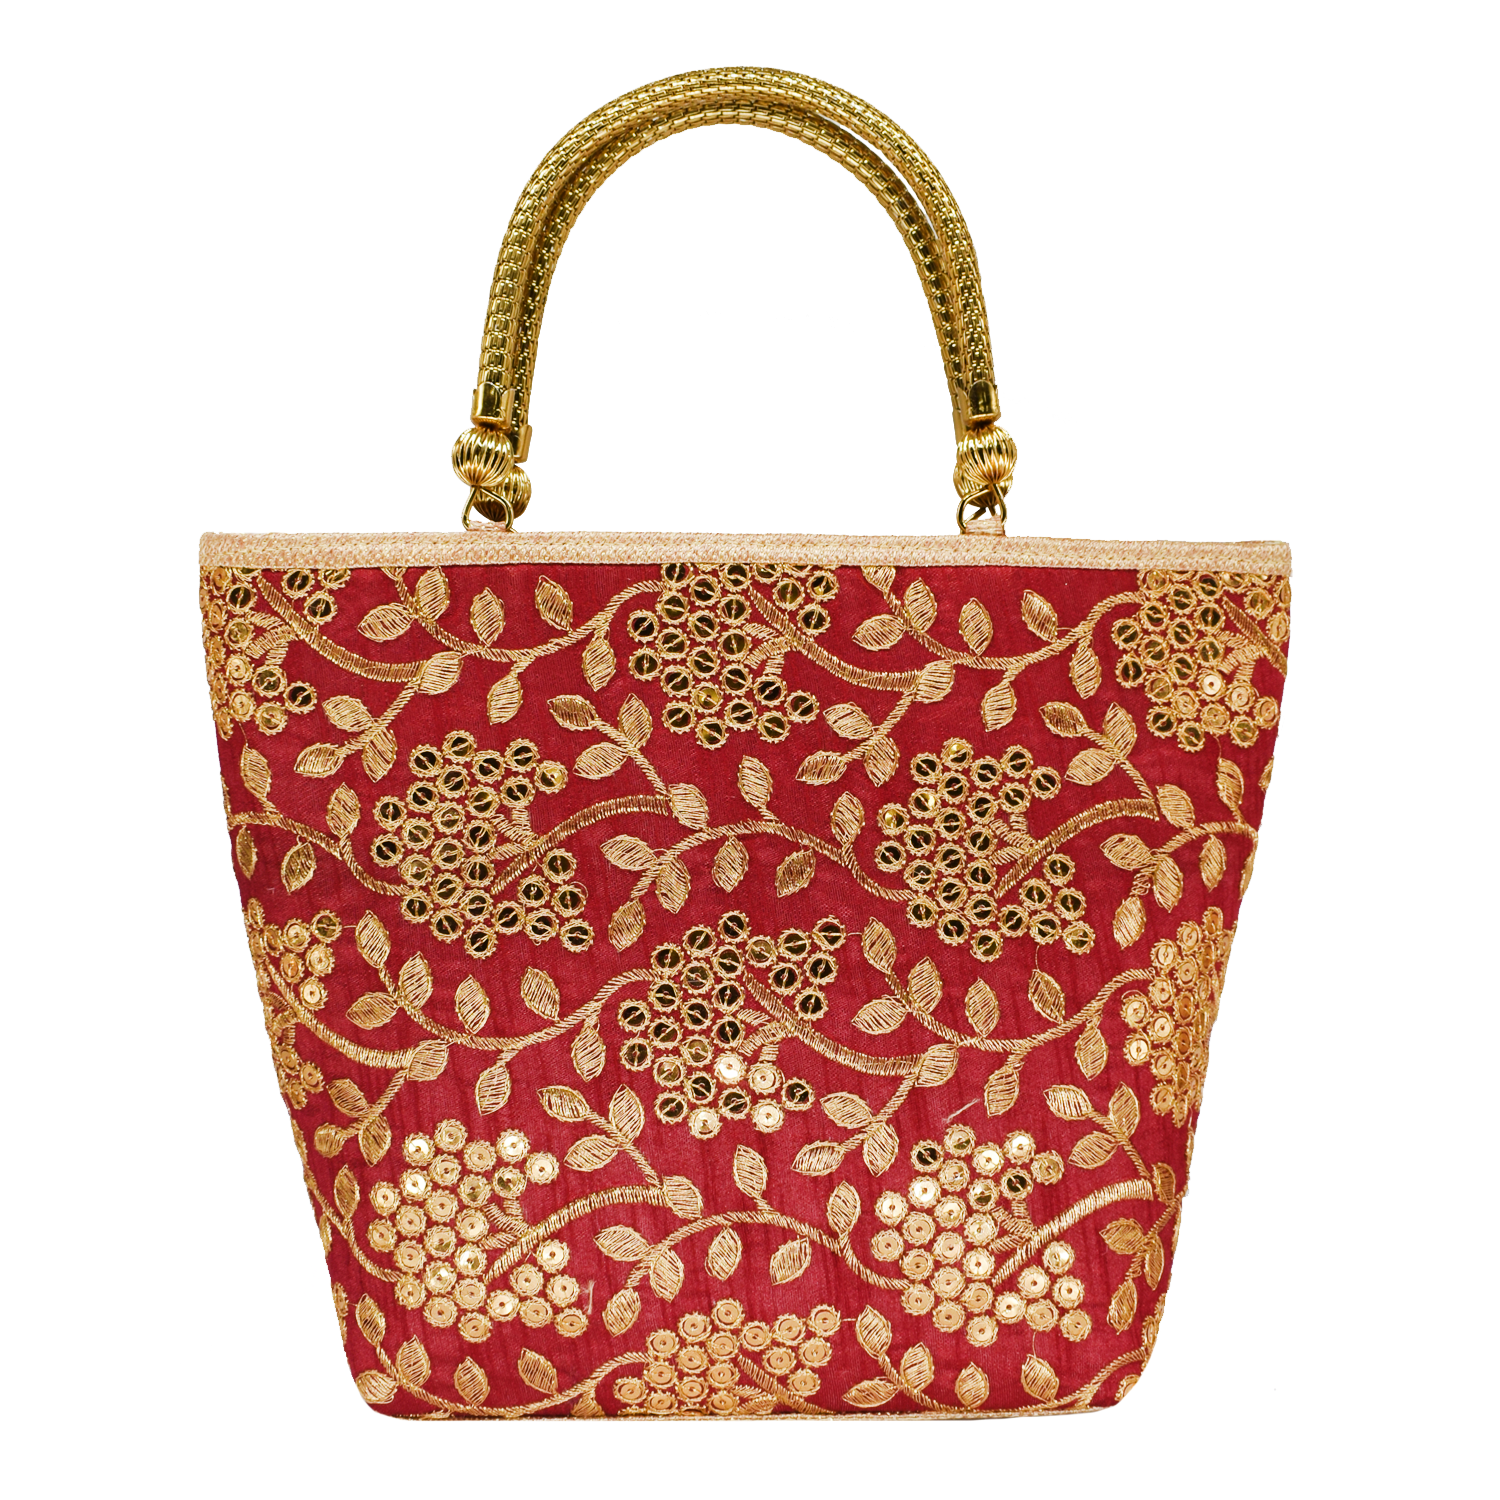 Ethnic embroidery Silk Clutch Bag  (Maroon) - Bagaholics Gift